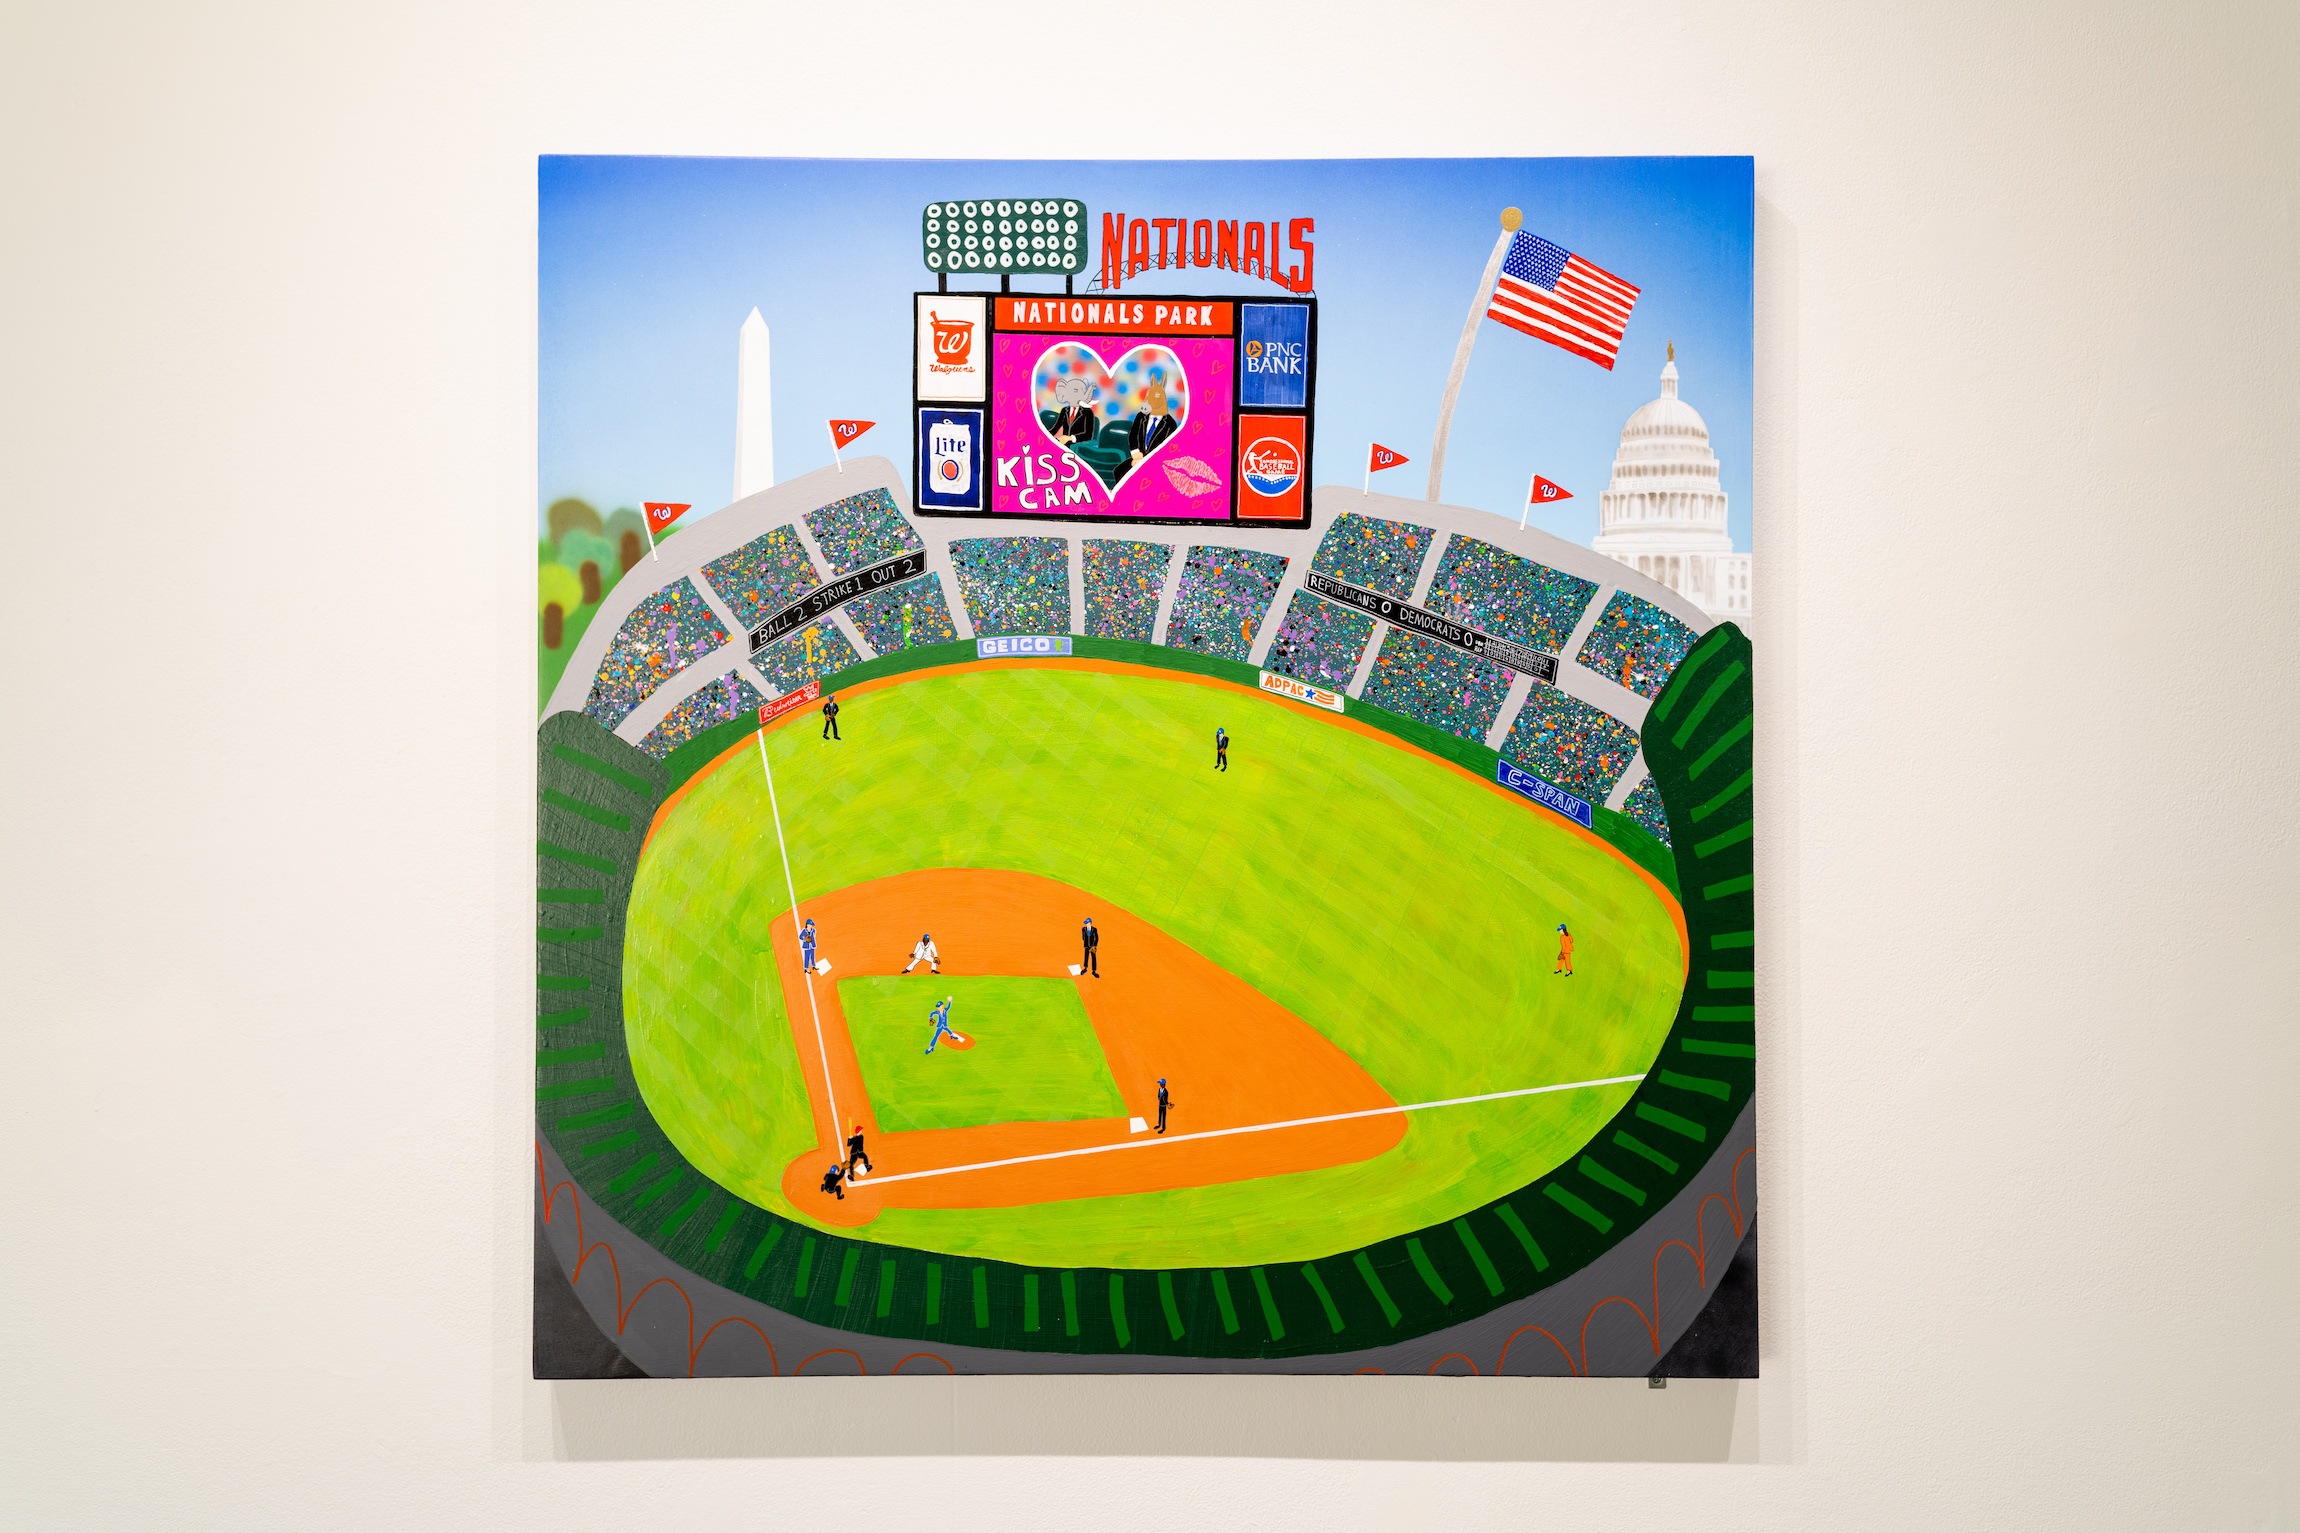 """Congressional Baseball Game,"" 2019, painting from James Pederson's Master of Fine Arts exhibition Rules of Engagement at the Gallery 7 of the Humanities Building, University of Wisconsin-Madison. Photography by Kyle Herrera."